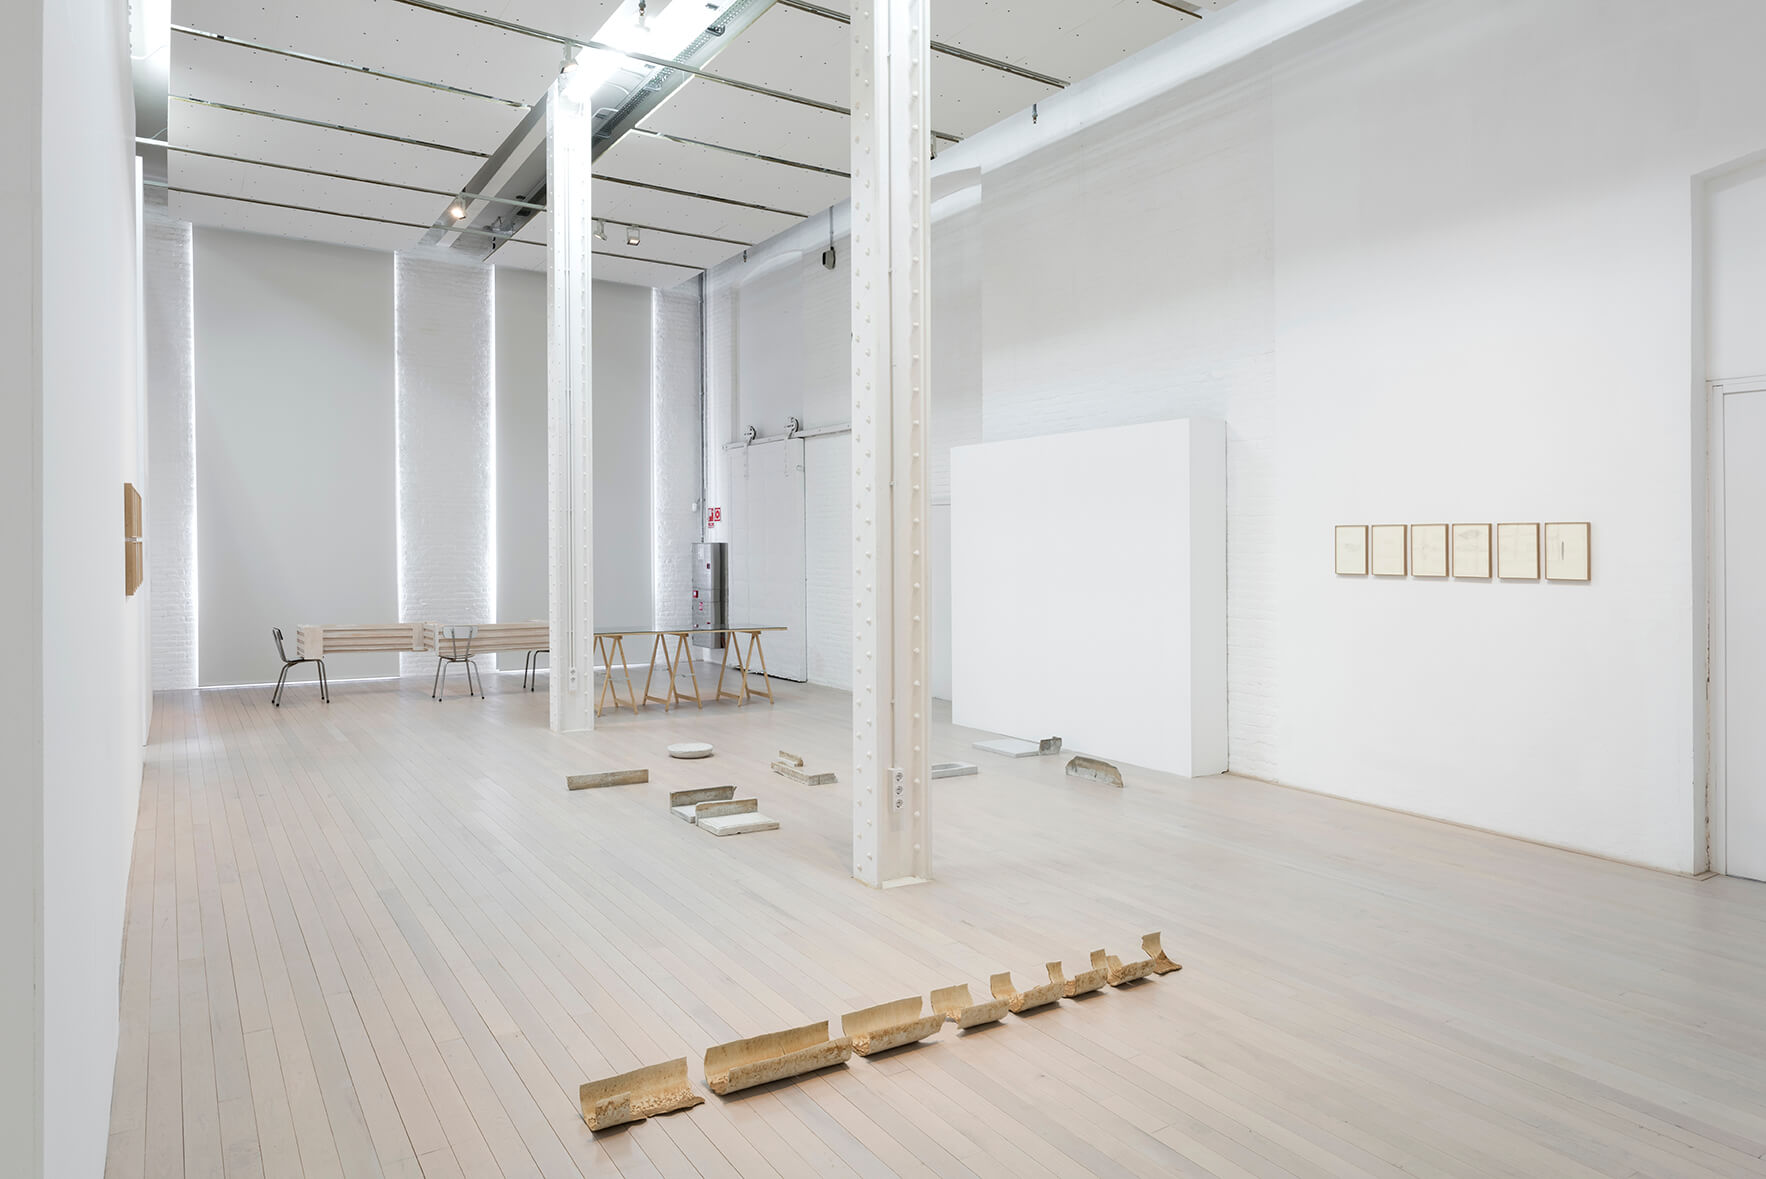 Exhibition view: Matèria Primera, Fabra i Coats, Centre d'Art Contemporani, Barcelona, 2018 |  | ProjecteSD